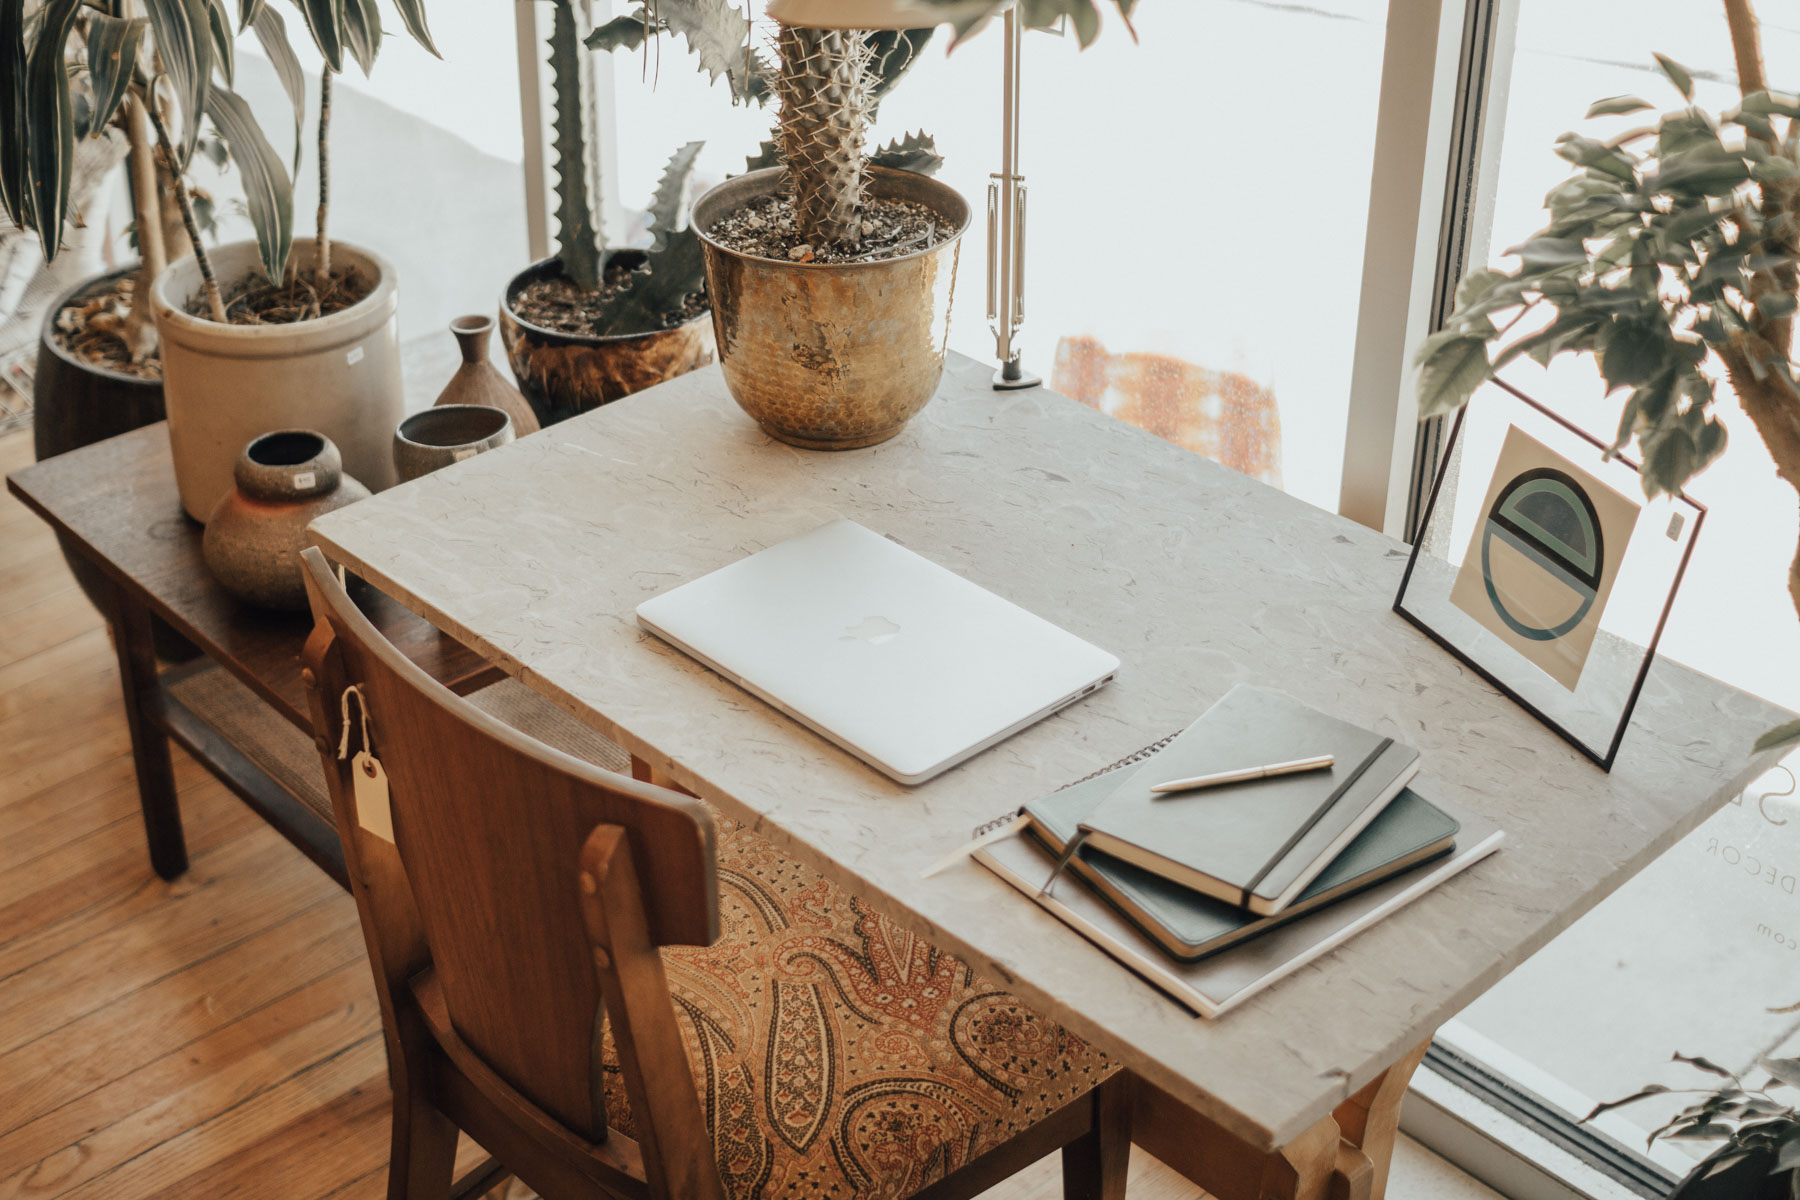 How to Prep Your Work for a True Vacation